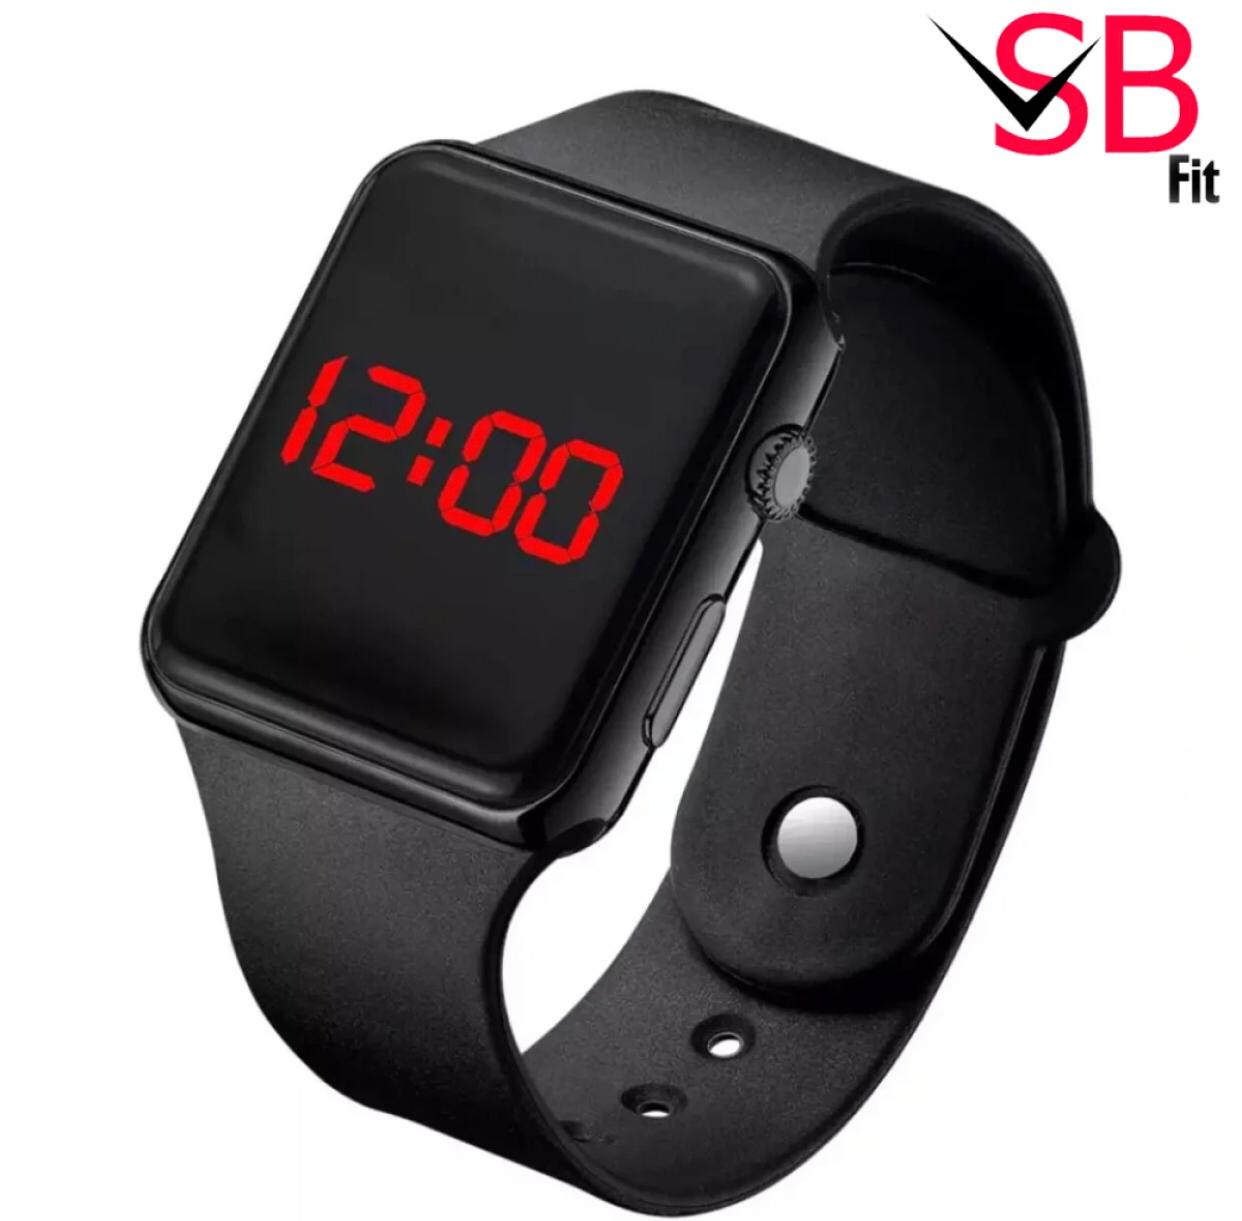 Digital Silicon Led Band For Men - SB Fit Black Stylish Sport Watch For Boys